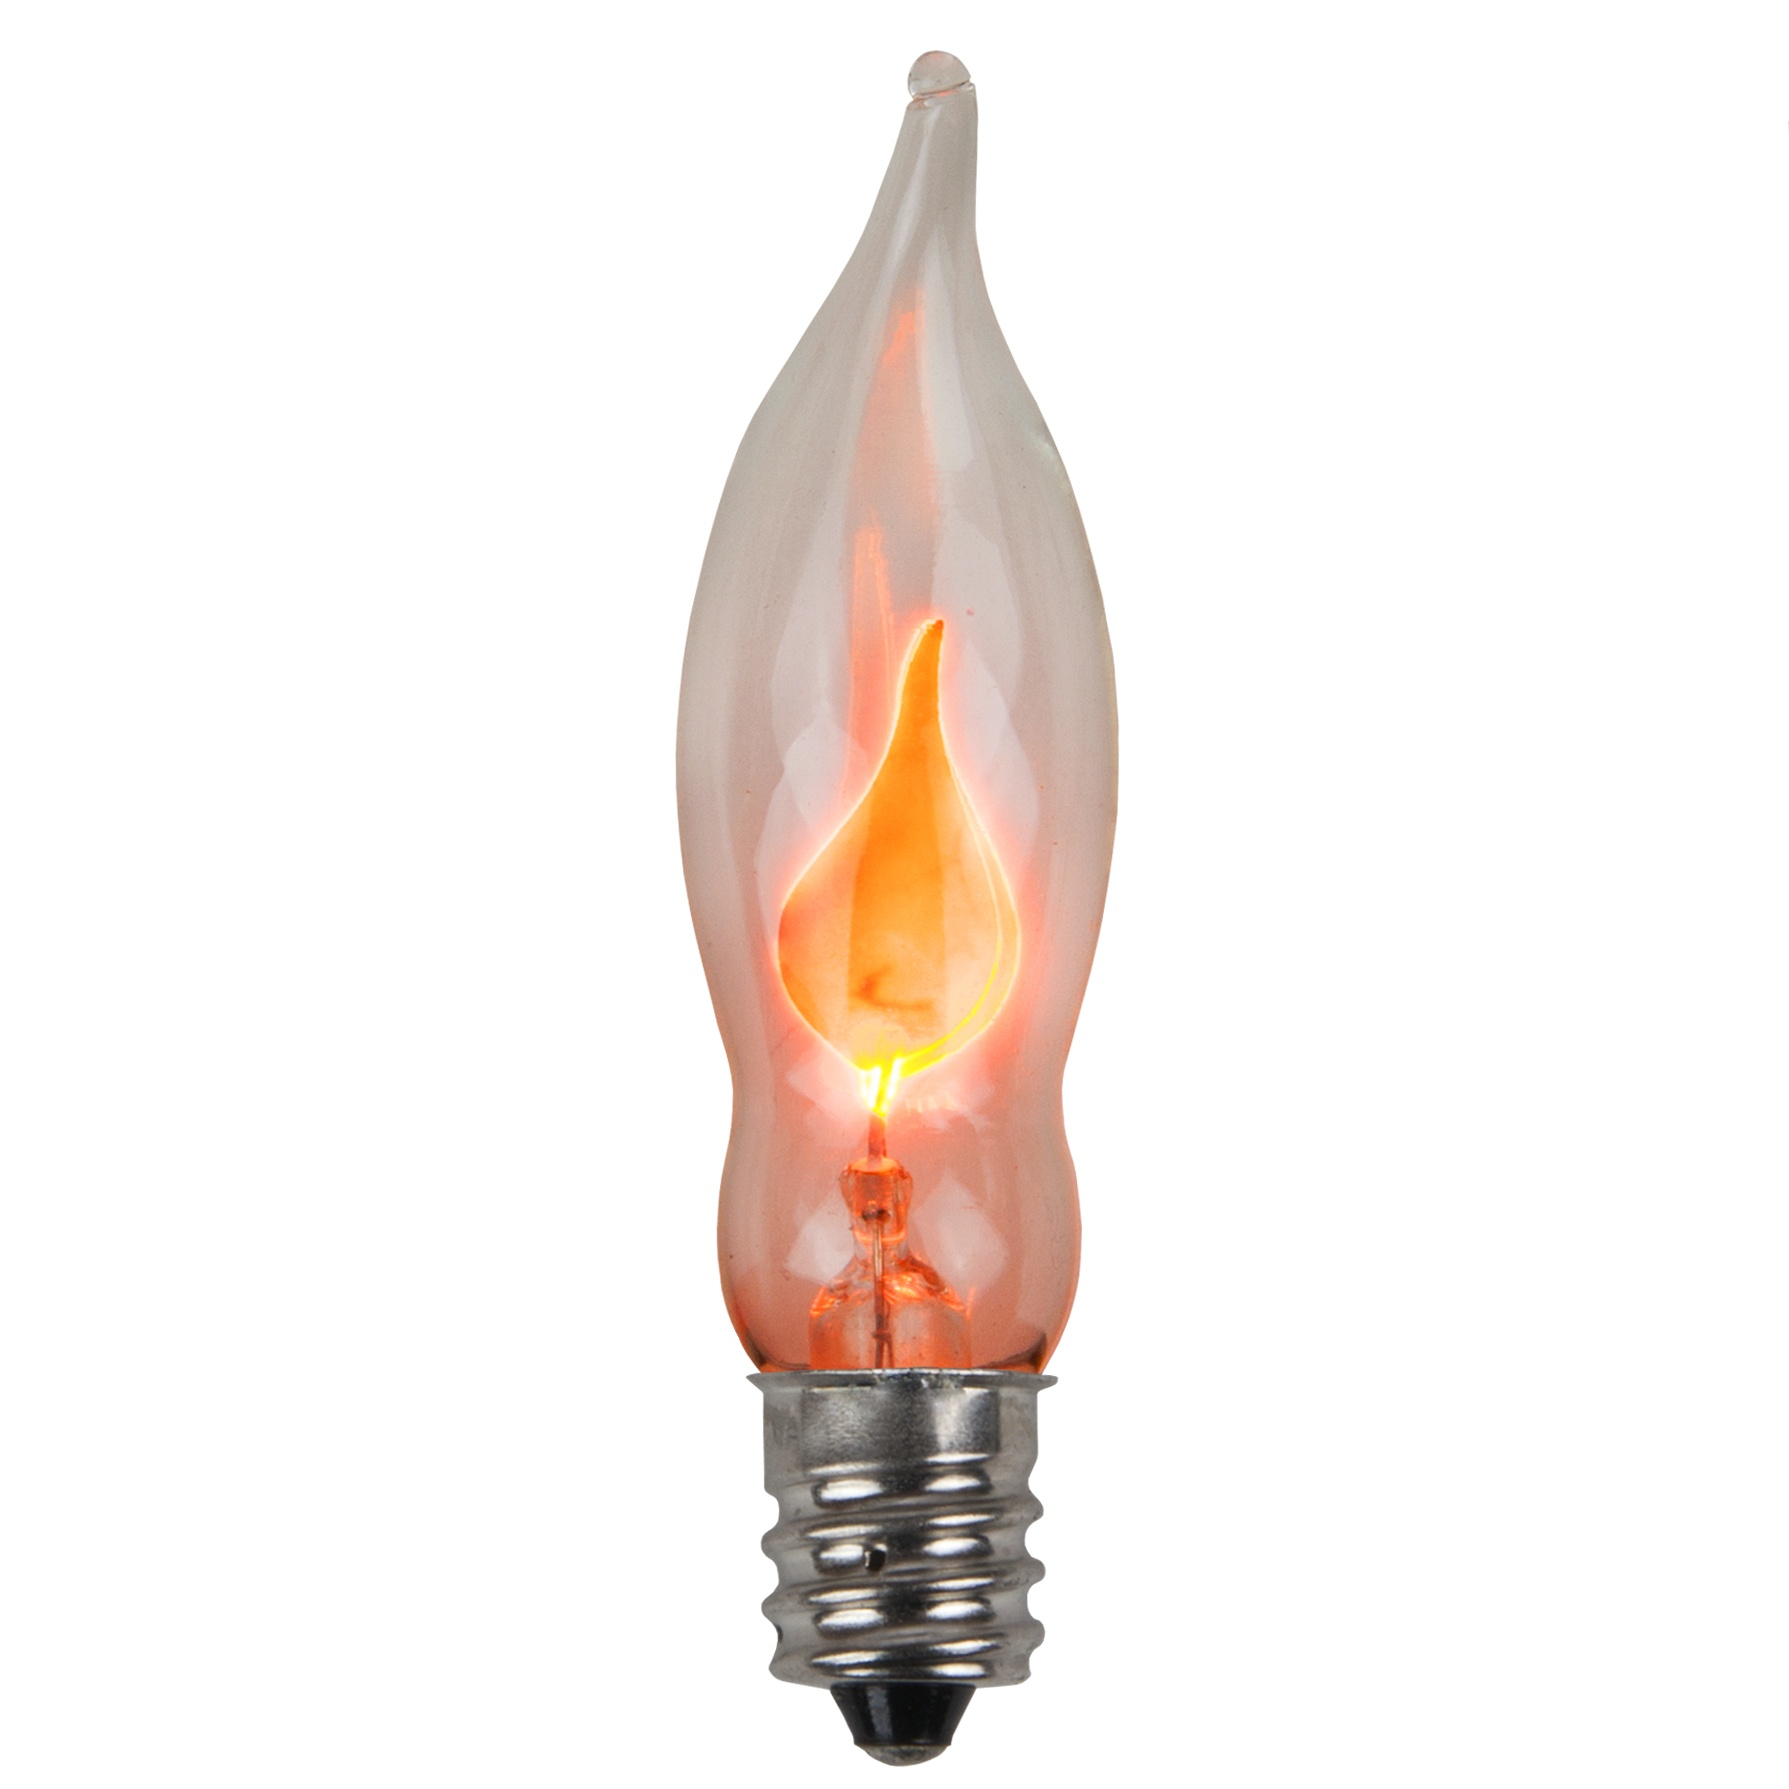 c7 christmas light bulb c7 flicker flame clear christmas light bulbs pack of 2